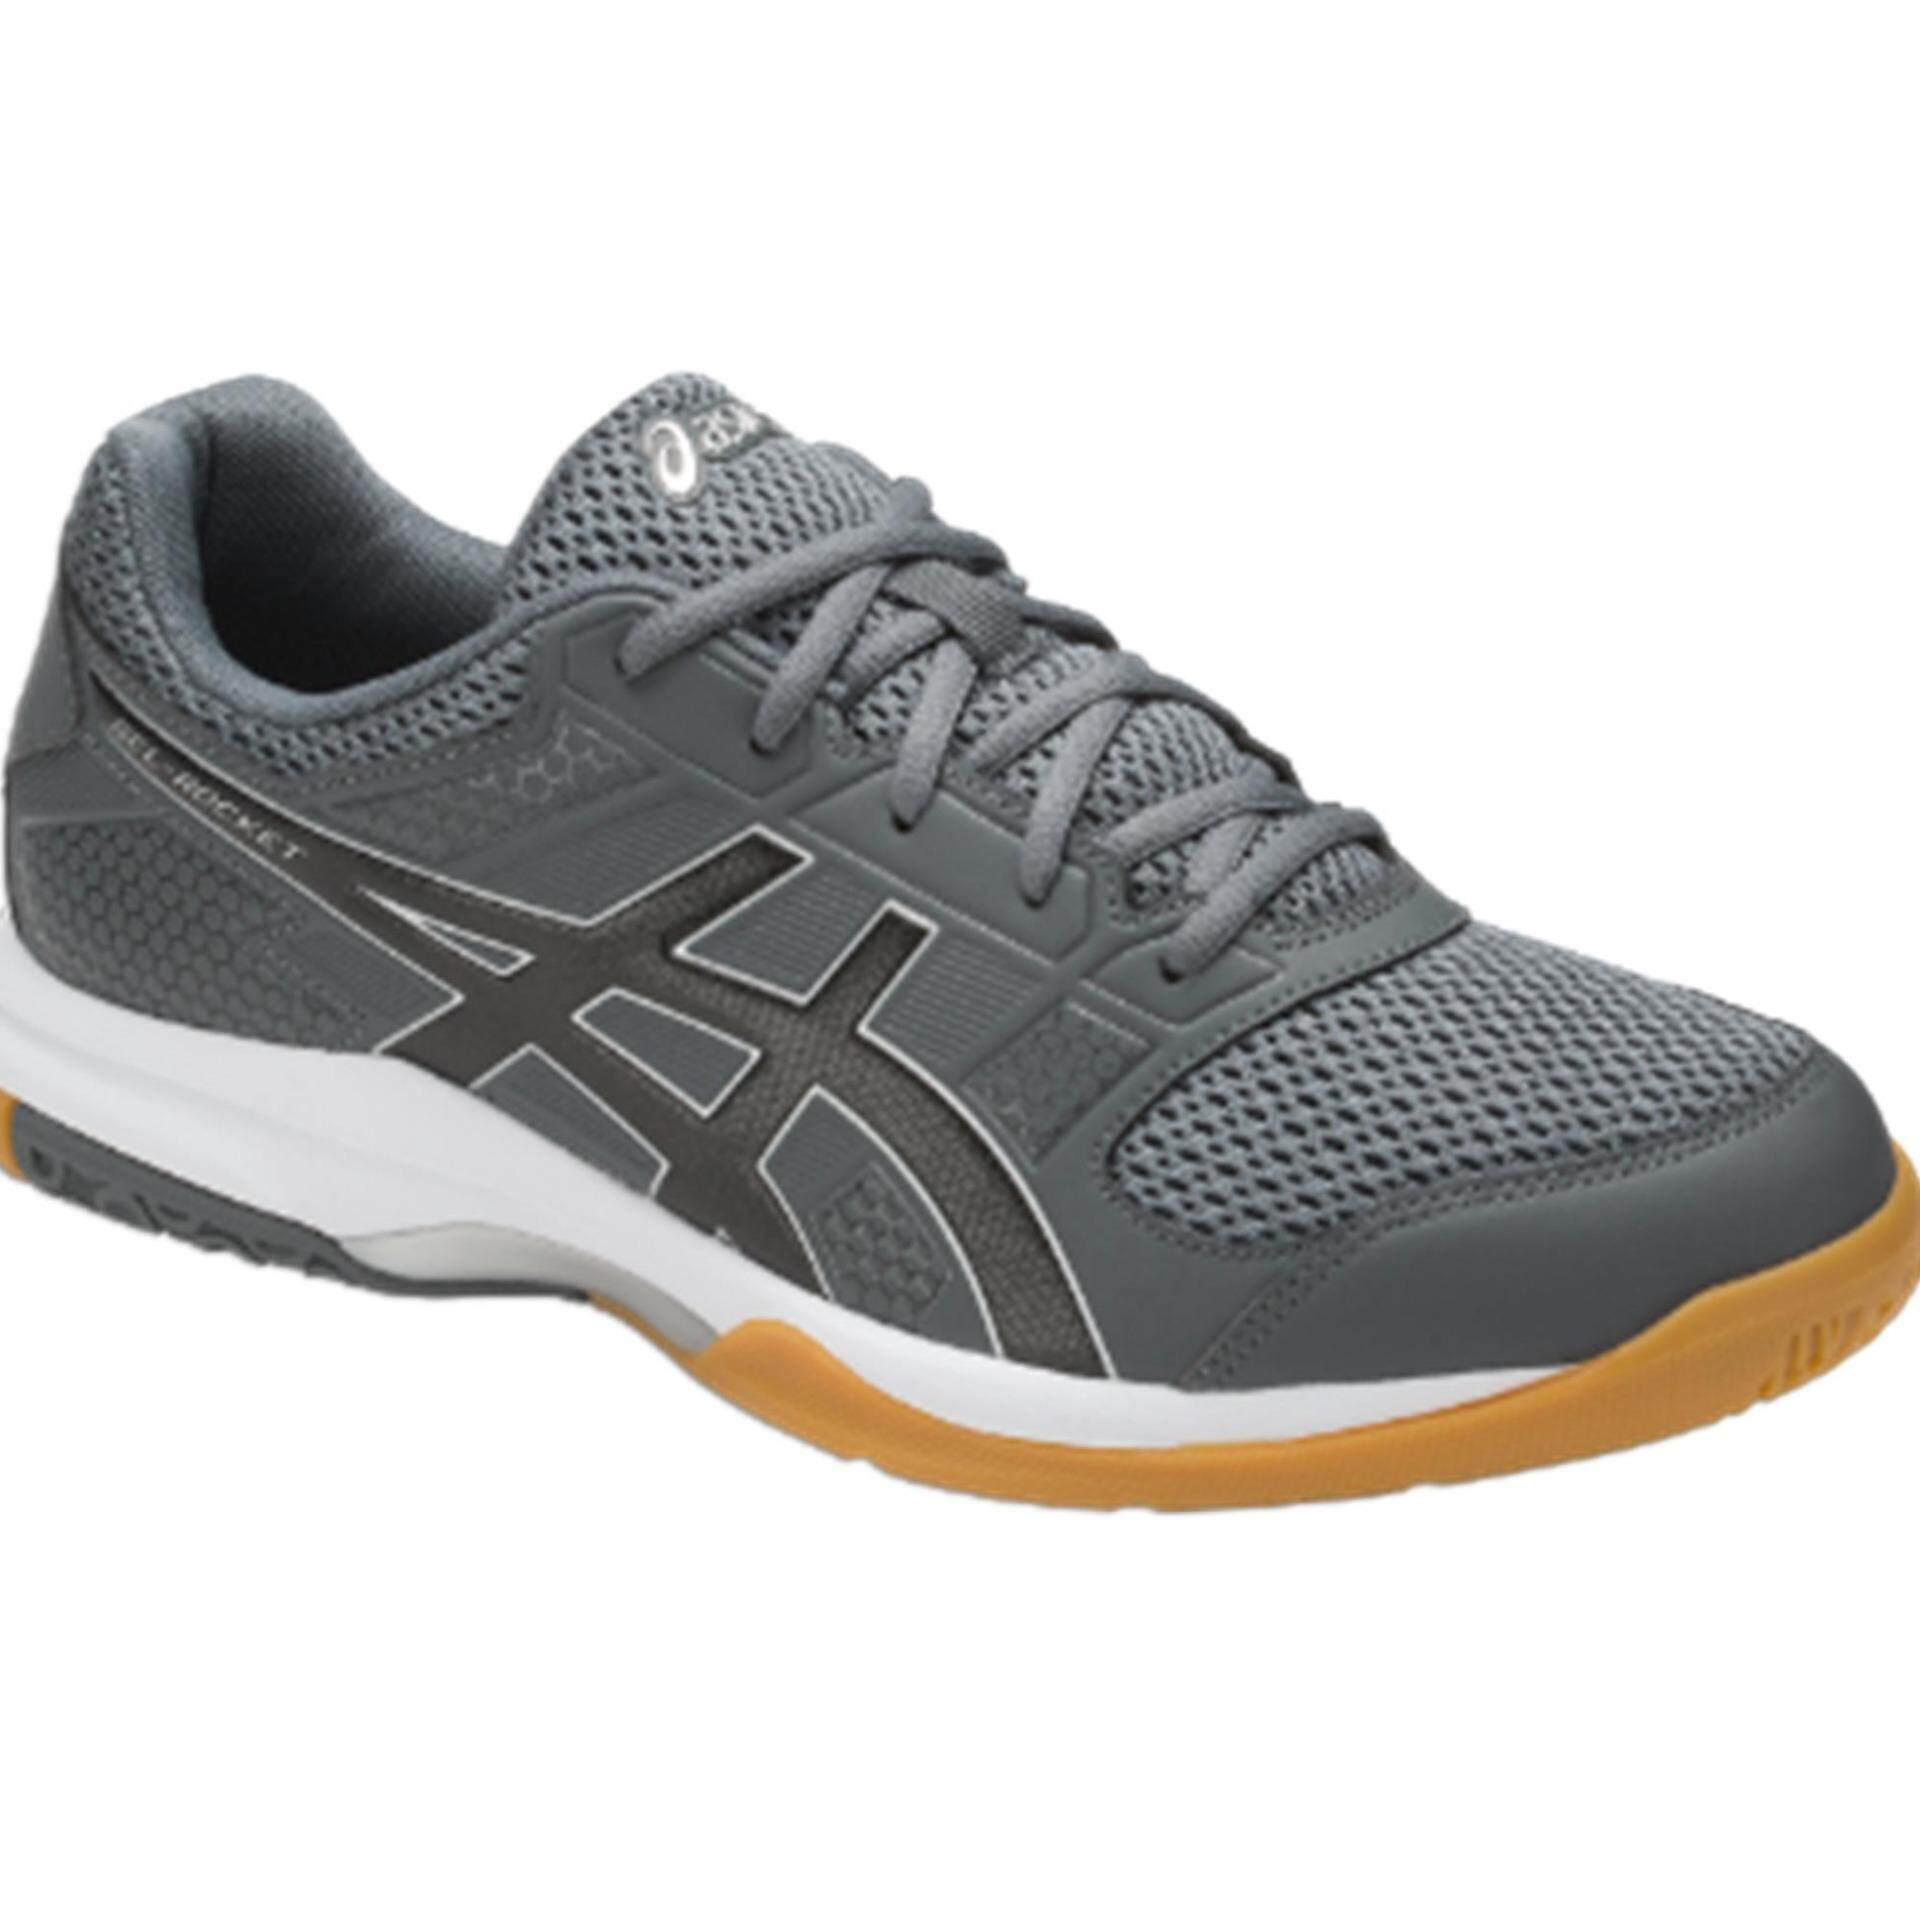 4d5acd6b2962 Asics Products for the Best Price in Malaysia